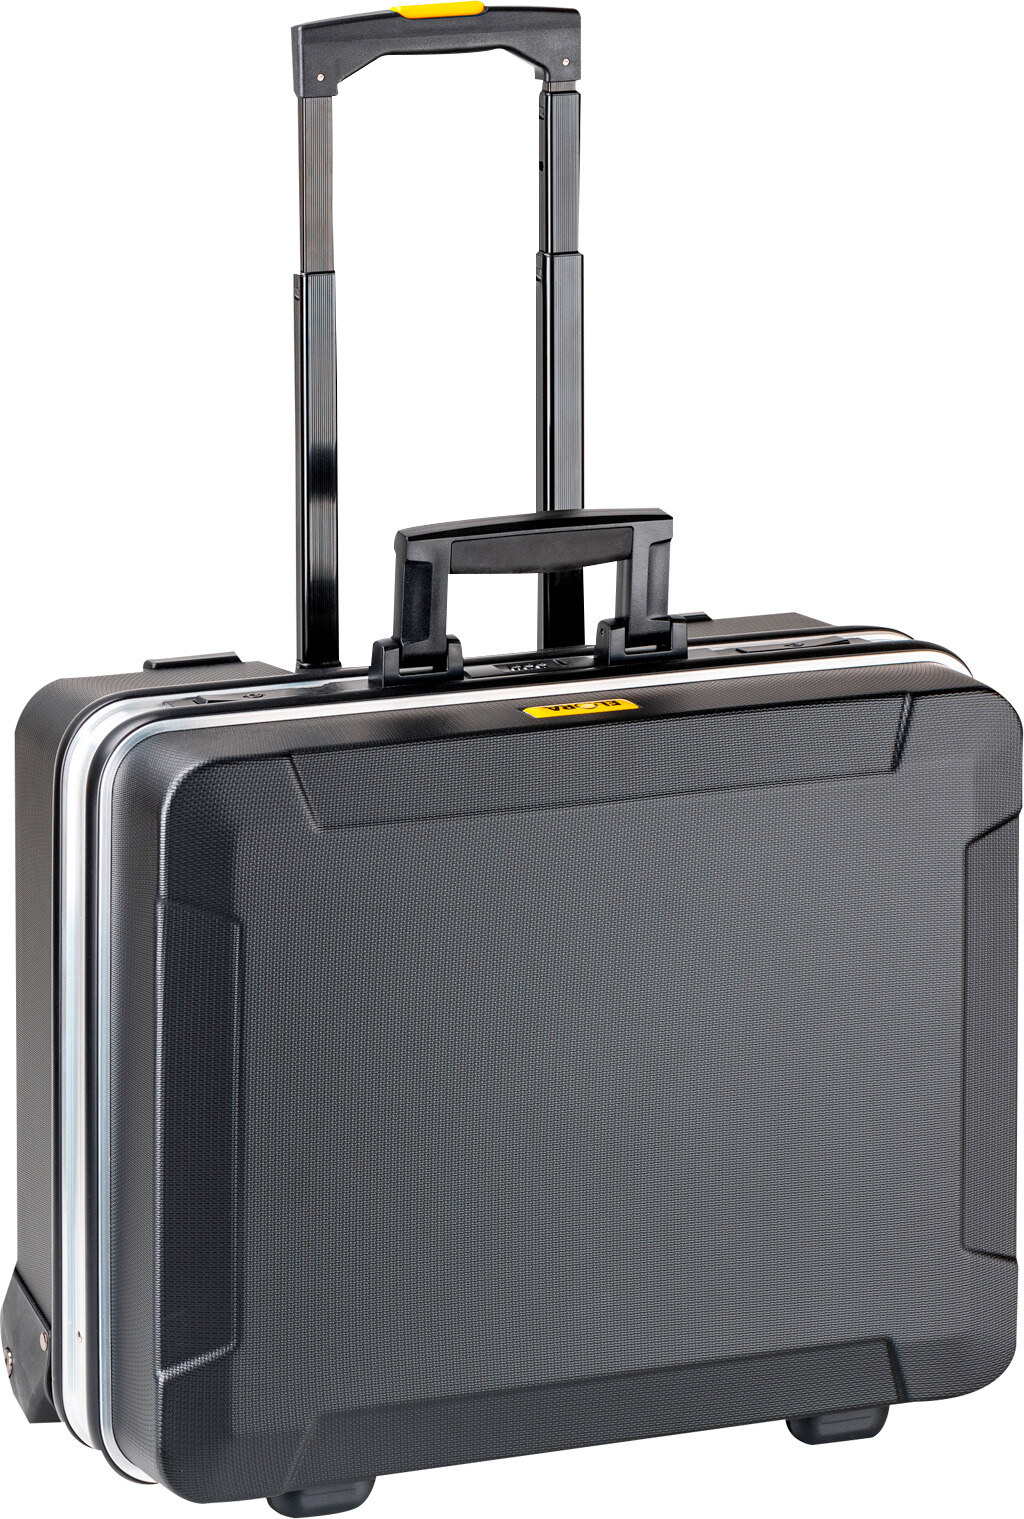 ELORA Hard Protective Trolley Case, ELORA 1381-L